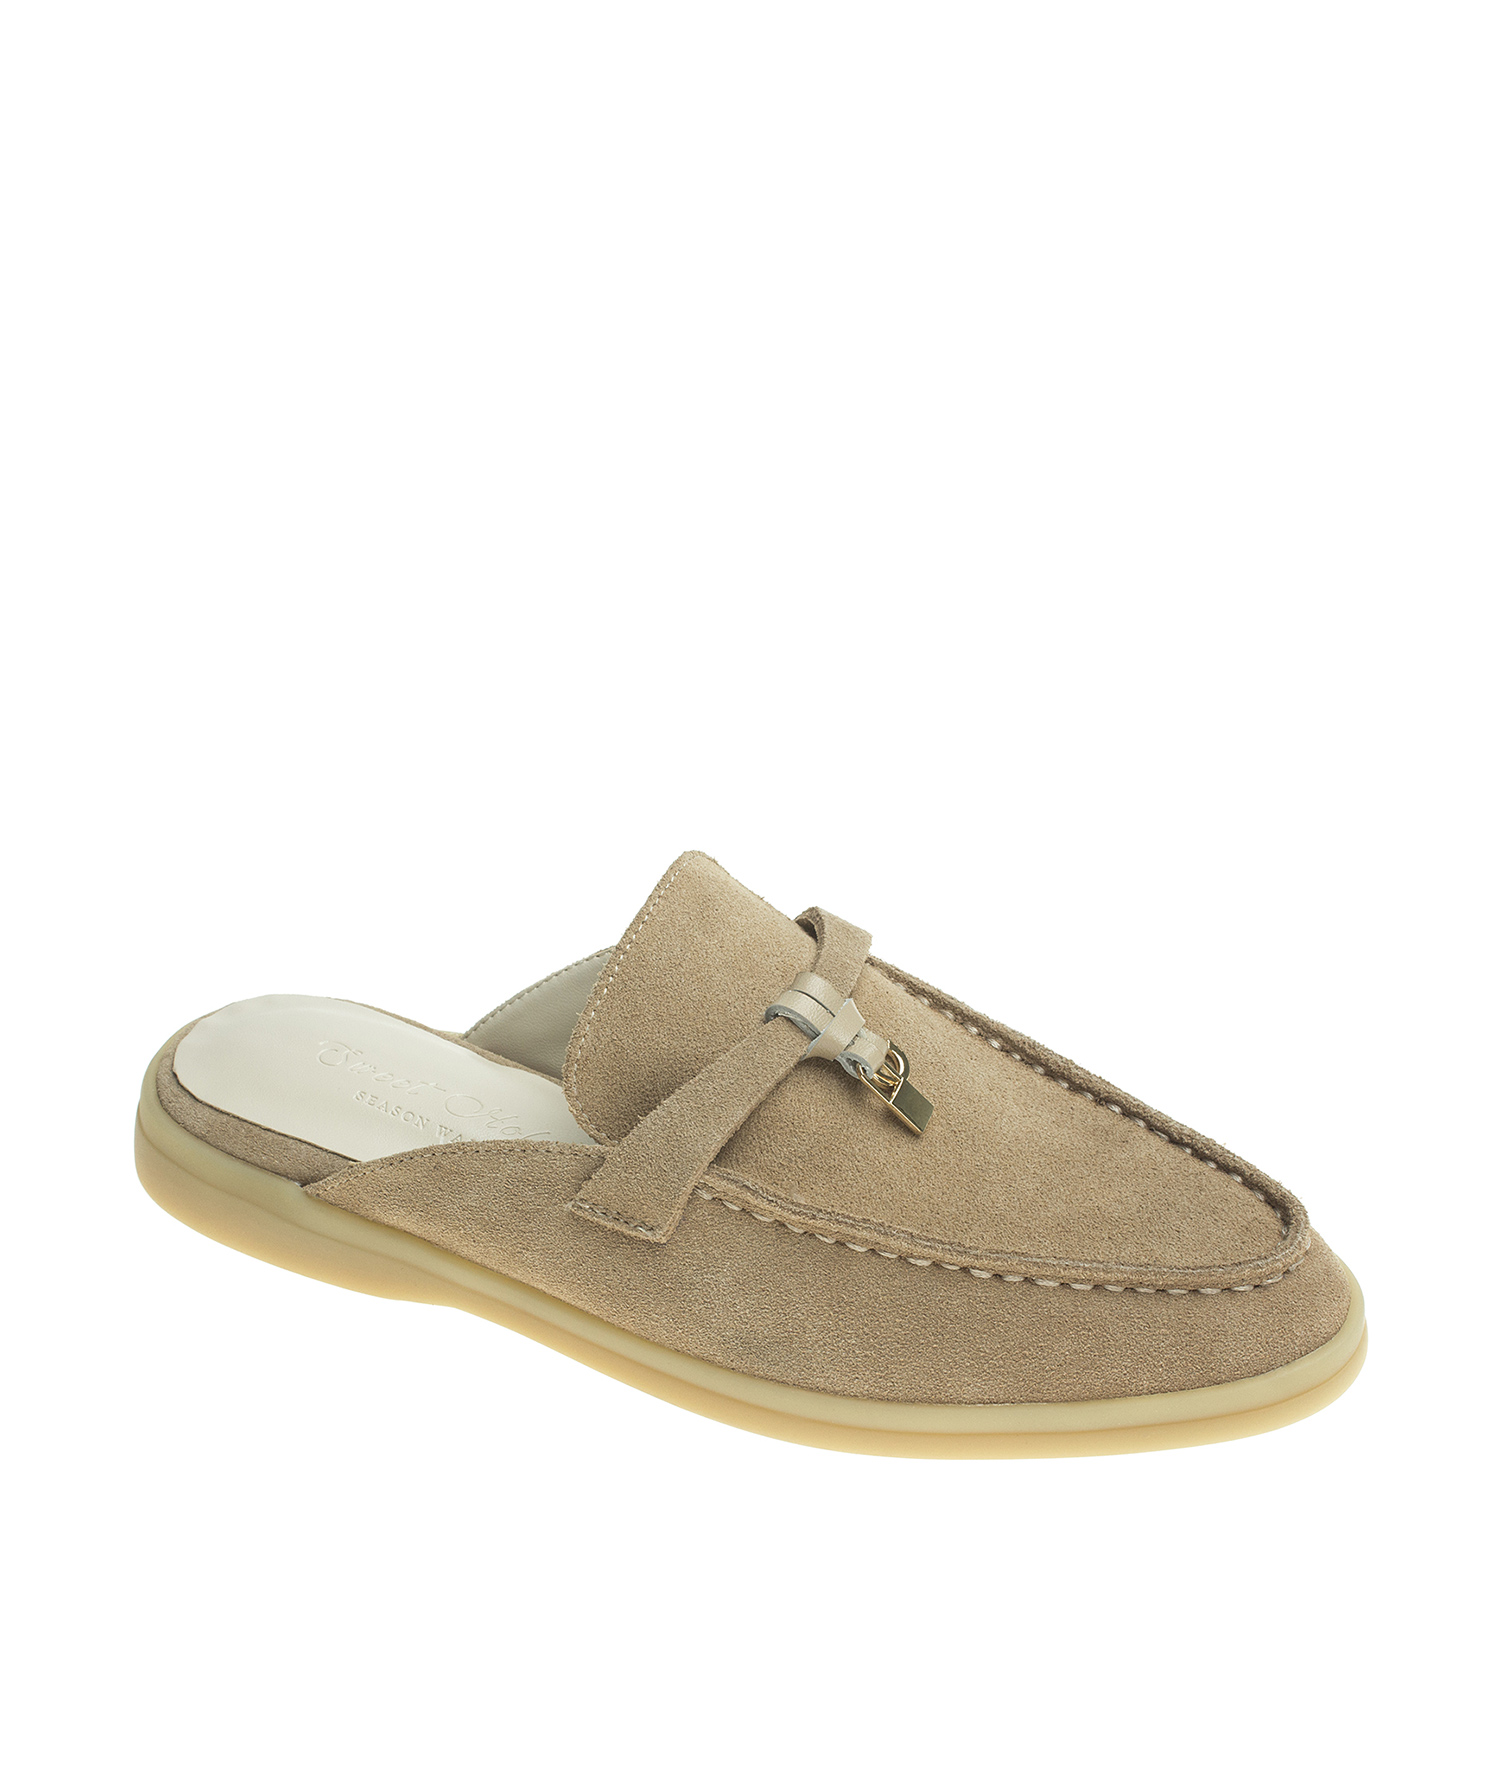 5c83b57a1a74 Suede Leather Sleek Toe Backless Loafer Mule - annakastleshoes.com